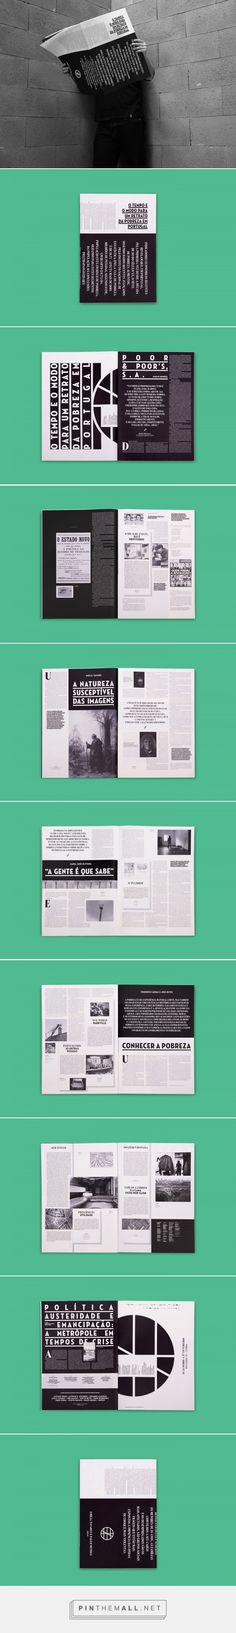 O Tempo e o Modo / Exhibition Journal by Non-Verbal Club